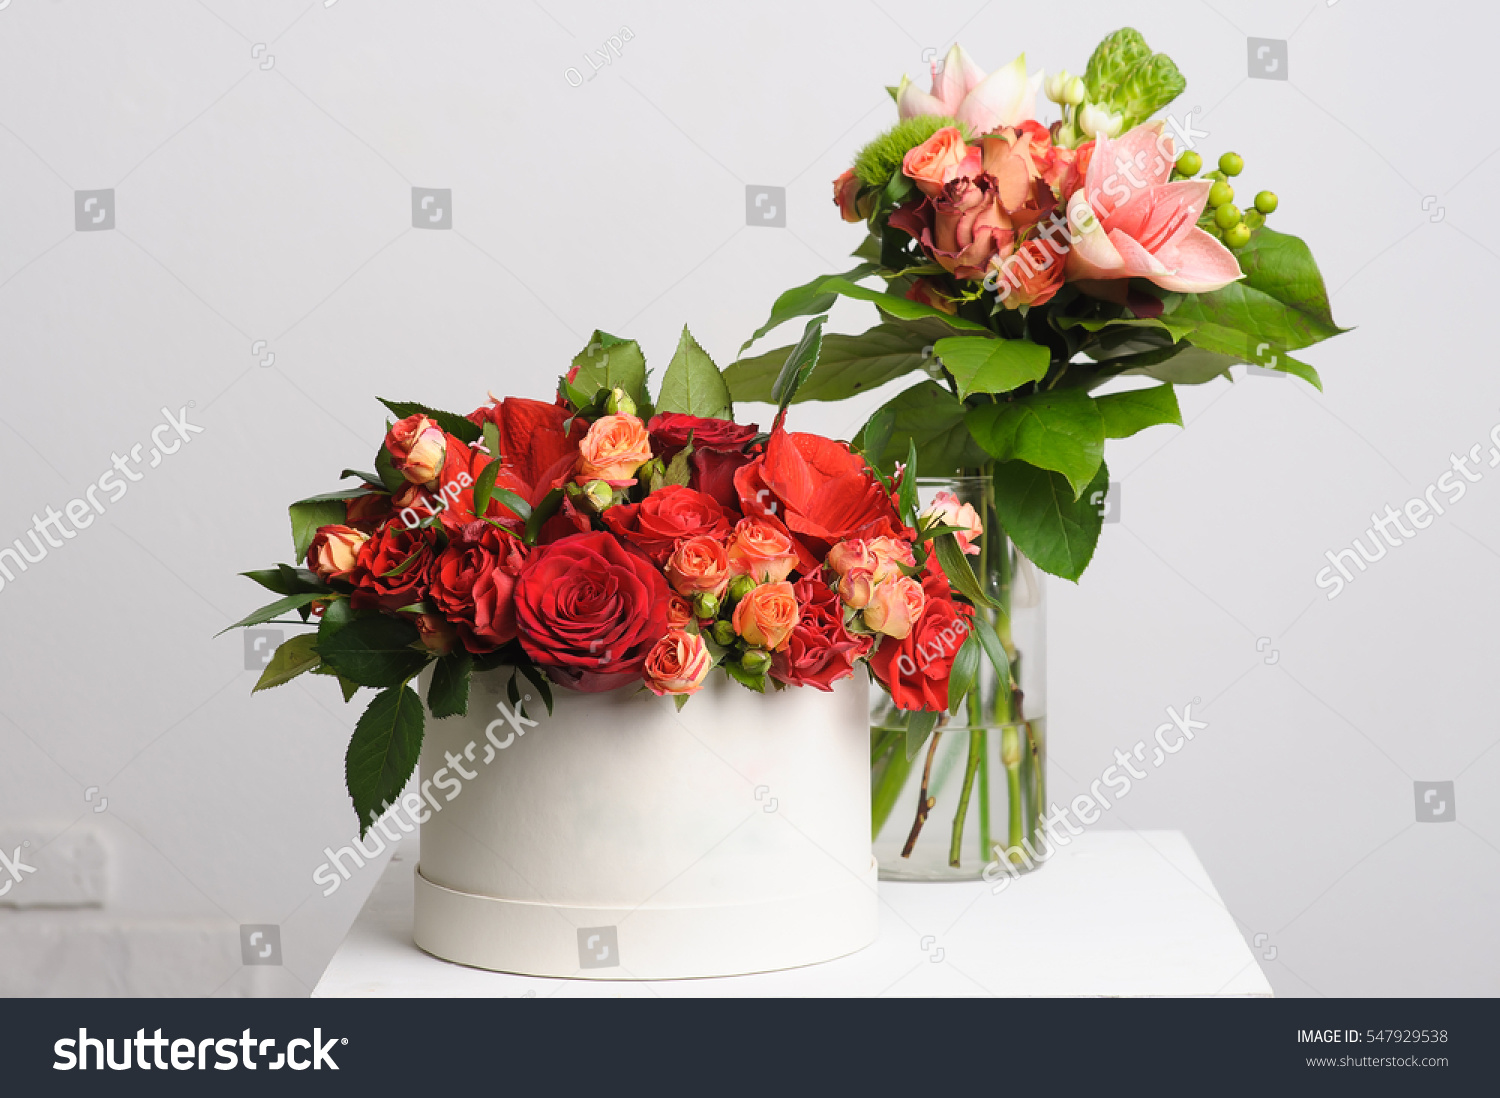 Flower Arrangement On Table Bouquet Roses Stock Photo Royalty Free